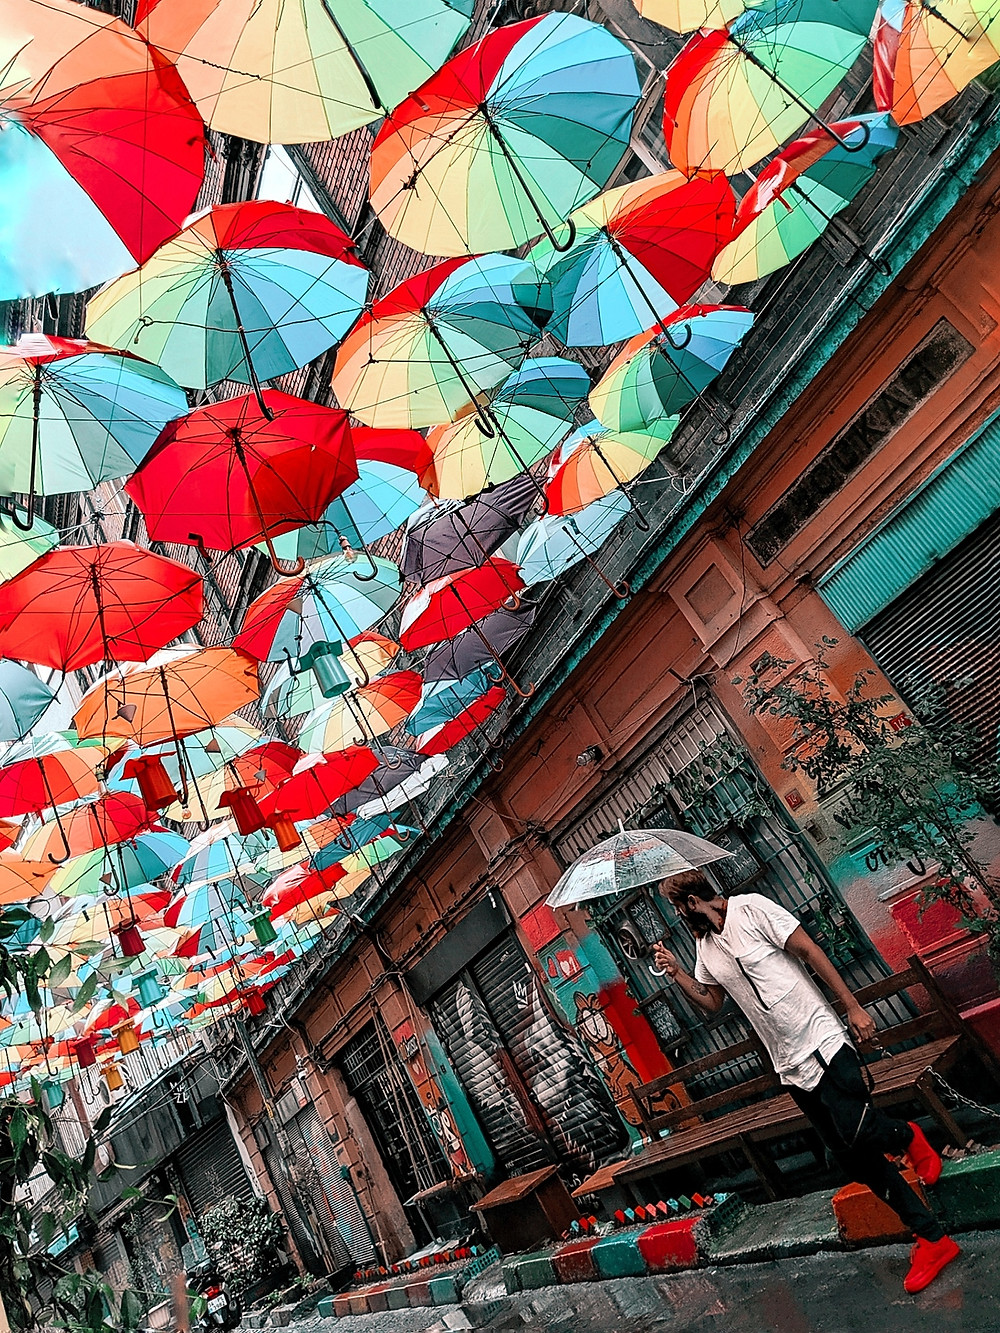 umbrella street | Taksim Square | Istanbul | istiklal street | taksim to tunel | tram | travel blog | istanbul itinerary | baklava | galata bridge | blue mosque | hagia sophia | topkapi palace | galata bridge | galata tower | bosphorus | grand bazaar | turkey | turkey tourism | karakoy |